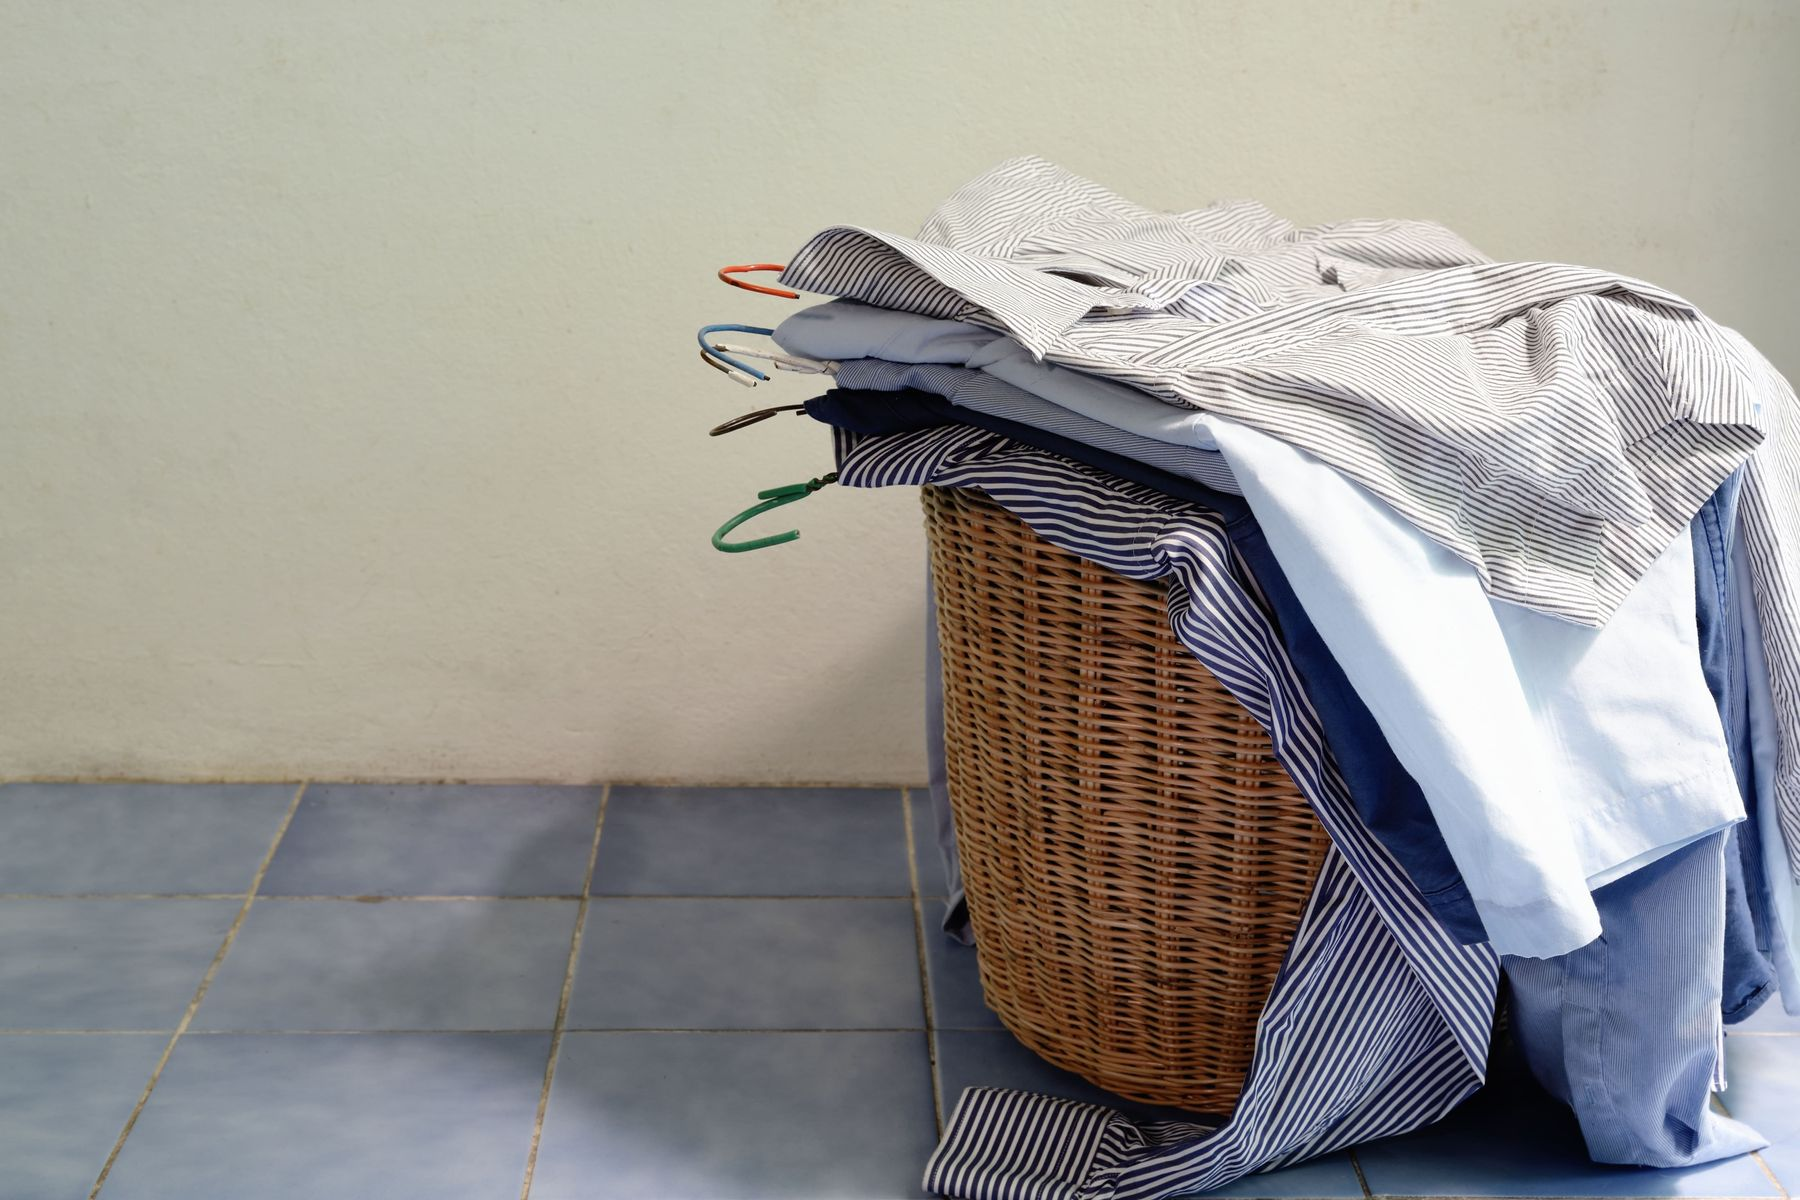 dampness making your clothes smell funny here are some easy ways to get rid of the damp odour